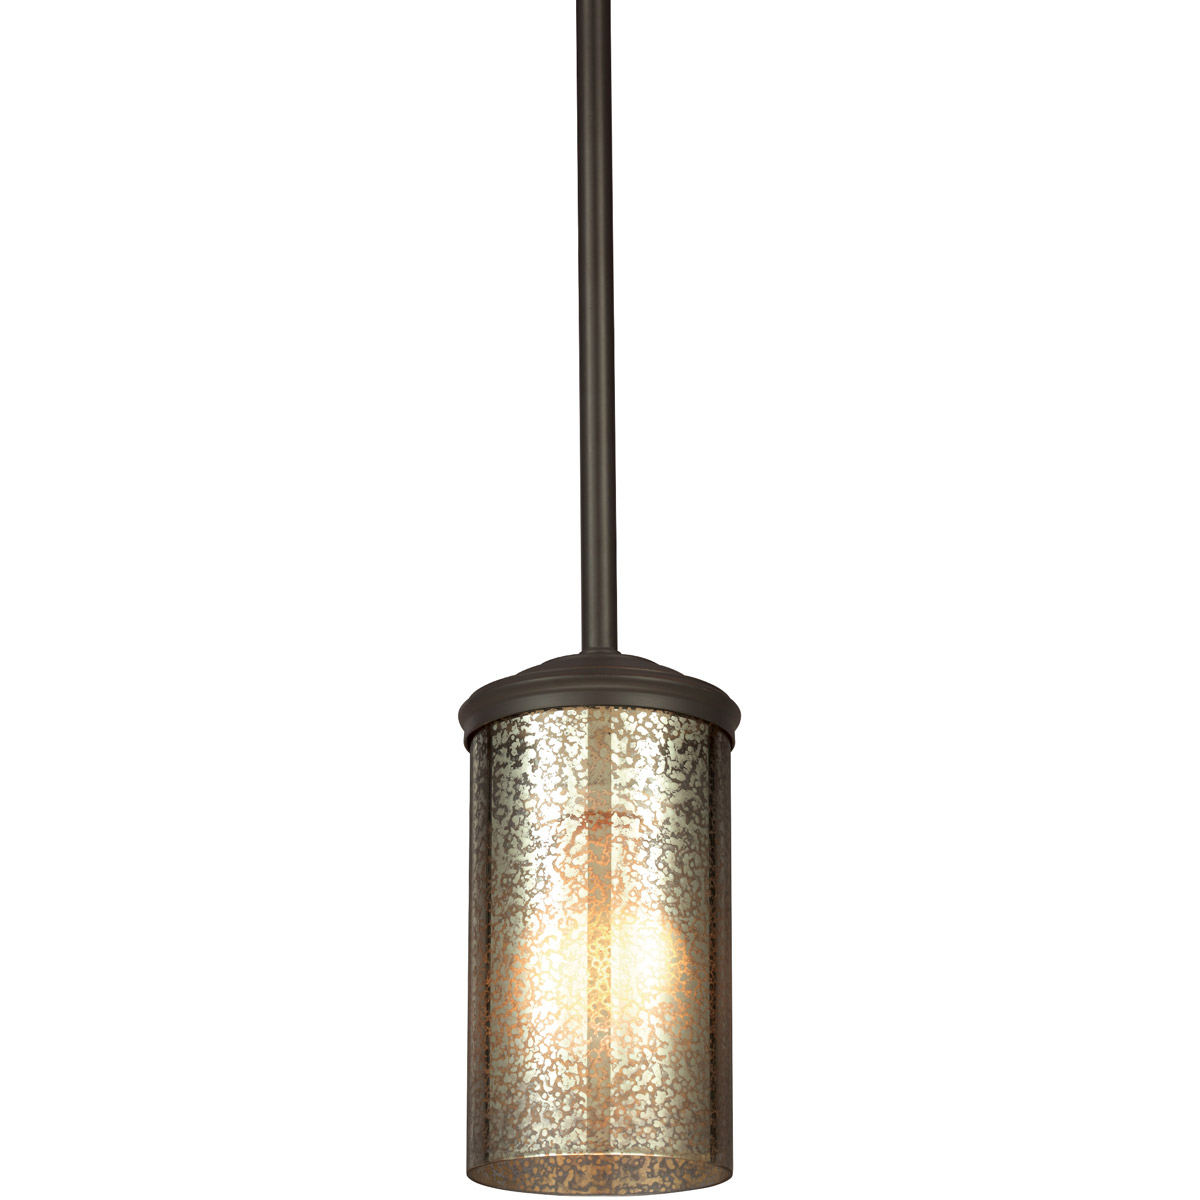 Sea Gull Sfera 1 Light Mini Pendant in Autumn Bronze 6110401BLE-715